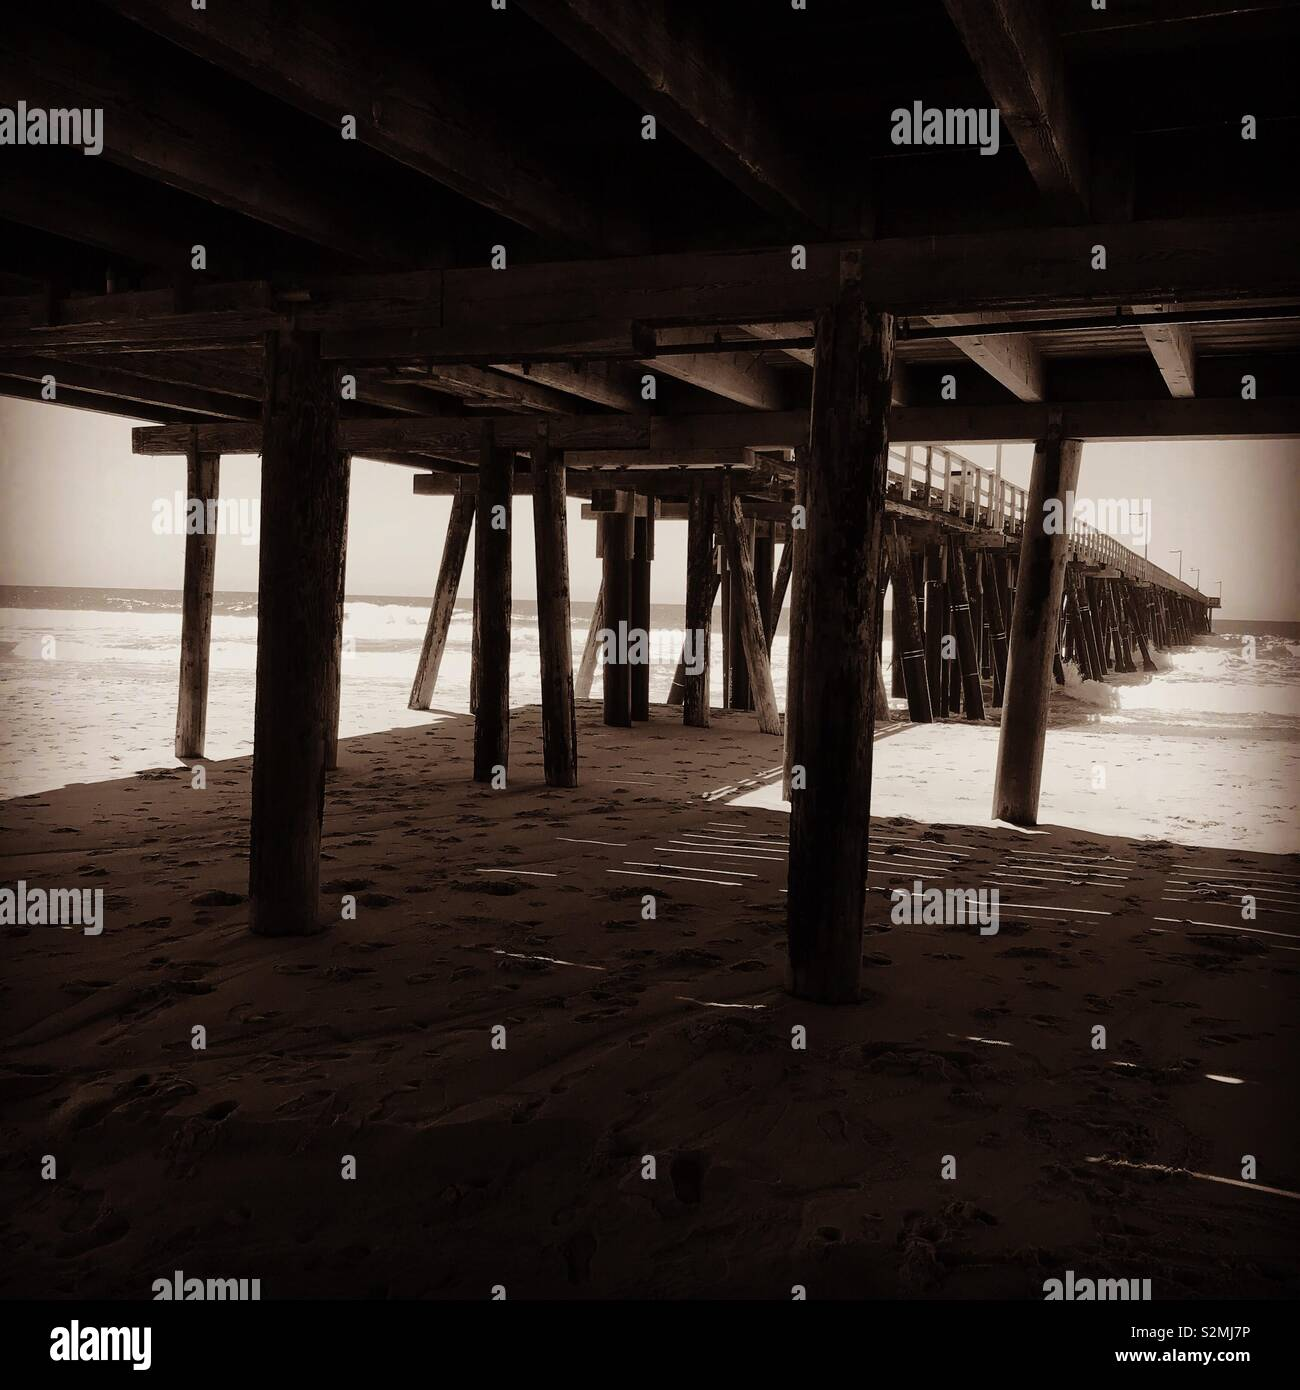 Port Hueneme Pier - Stock Image